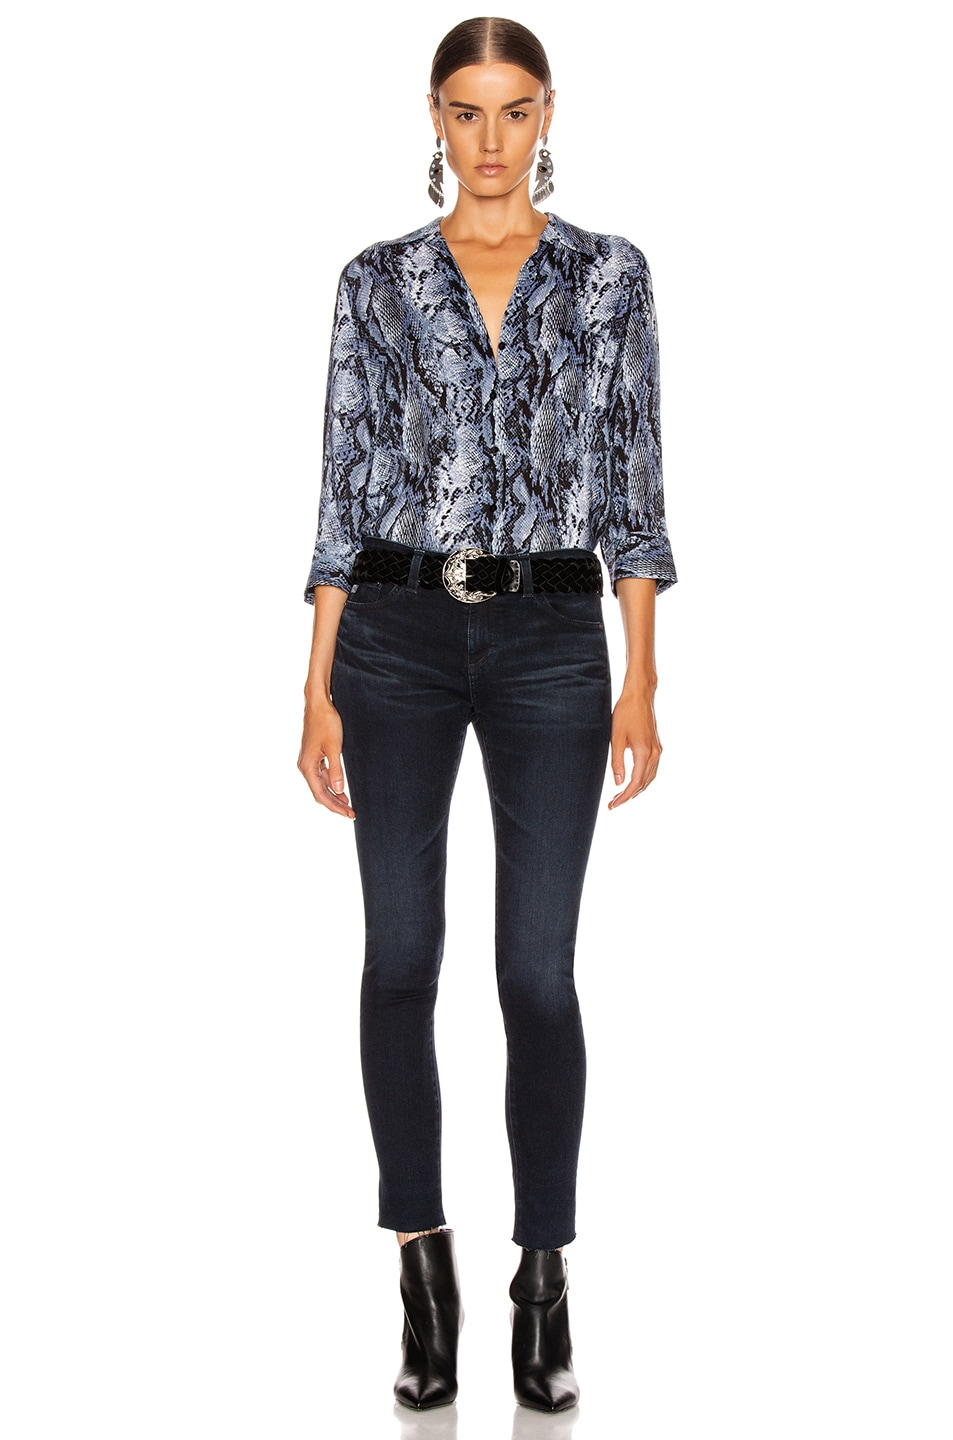 Image 4 of L'AGENCE Ryan Blouse in Myst Salvadora Print